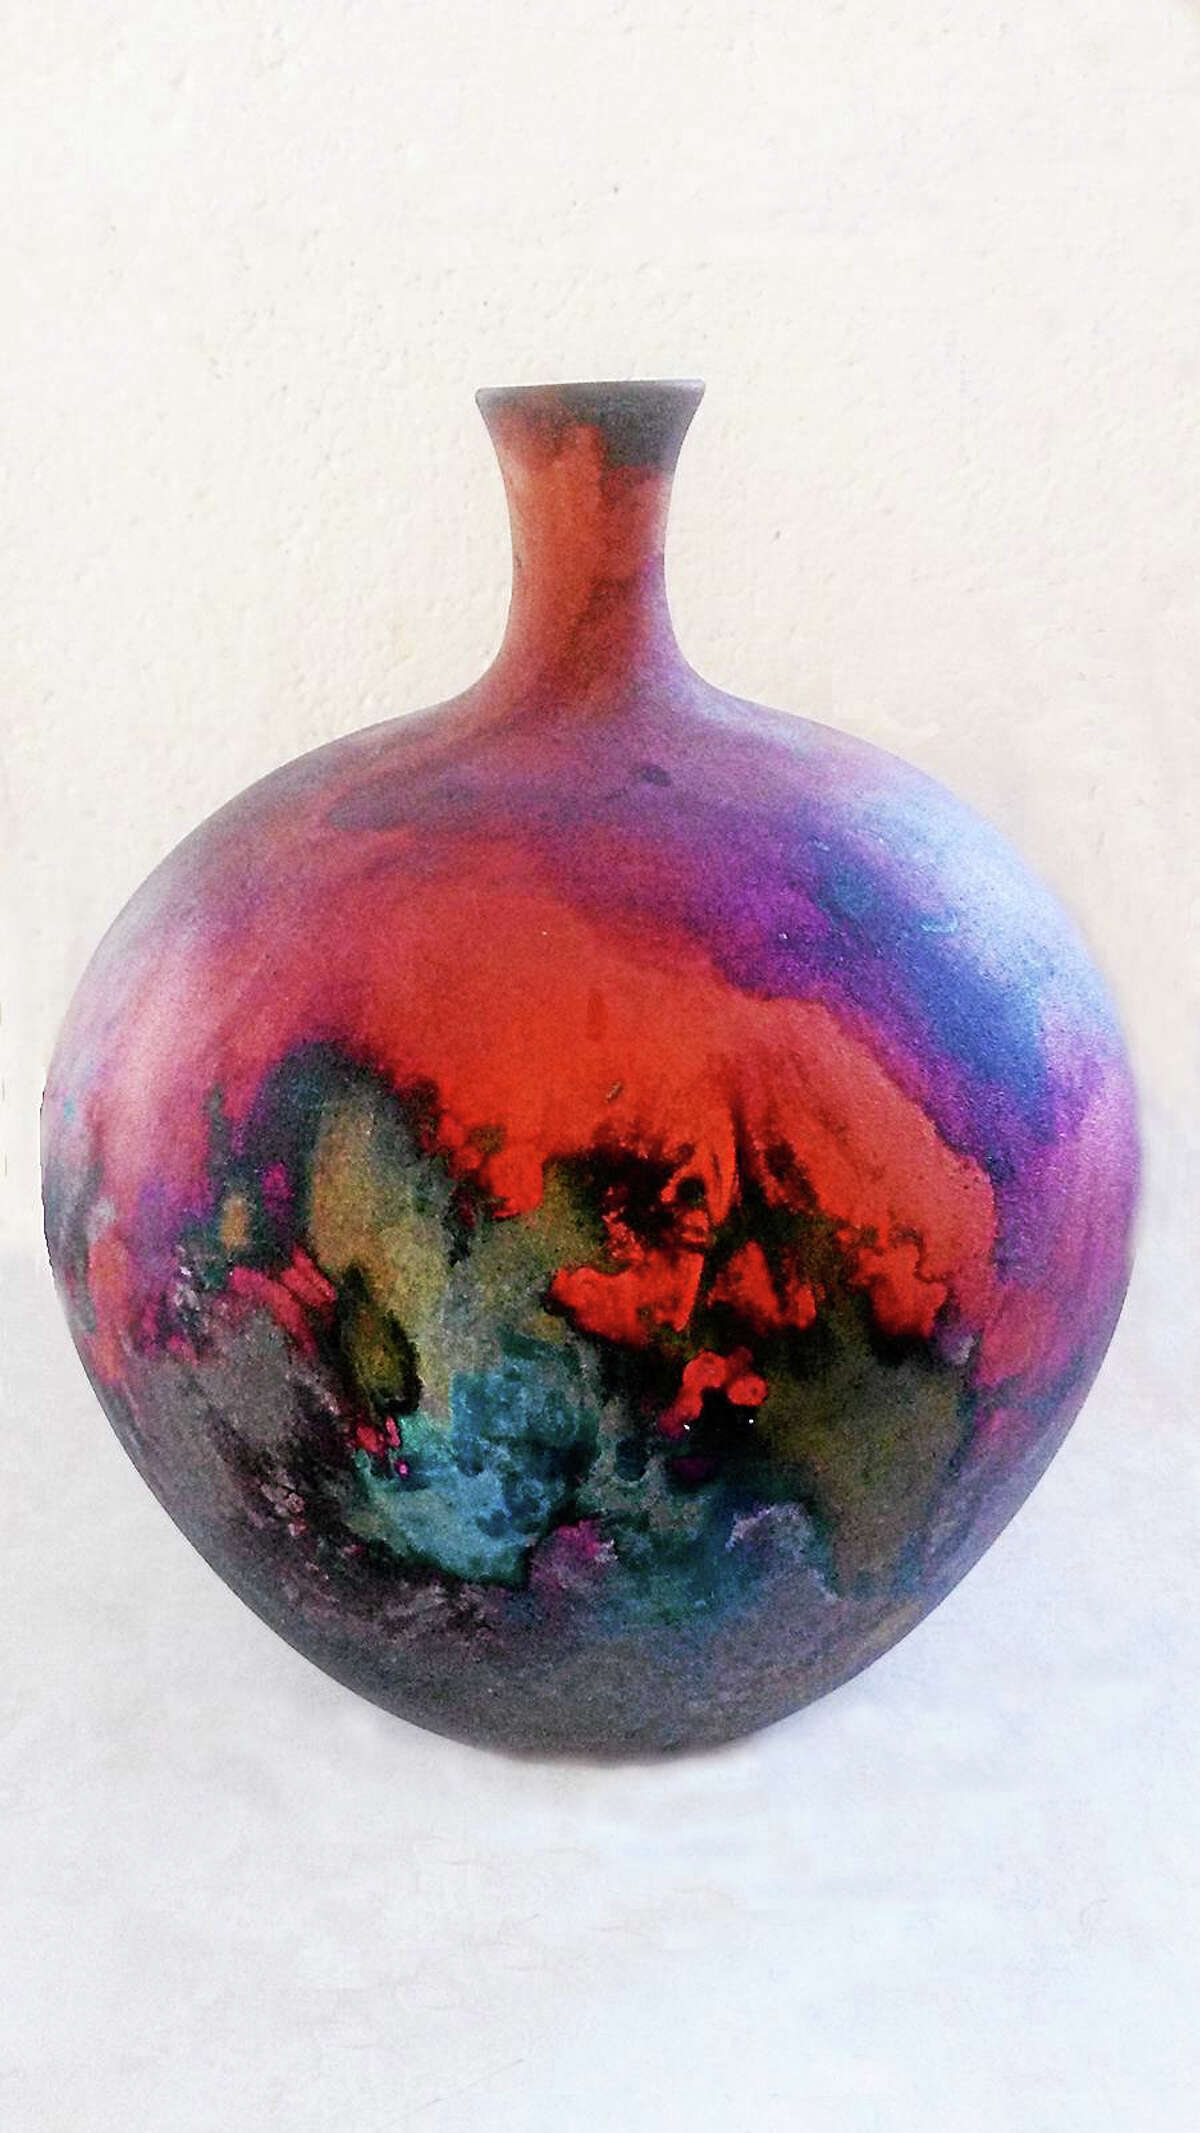 Contributed photo courtesy of the artistRaku vase by Collinsville potter Debbie Altschwager.